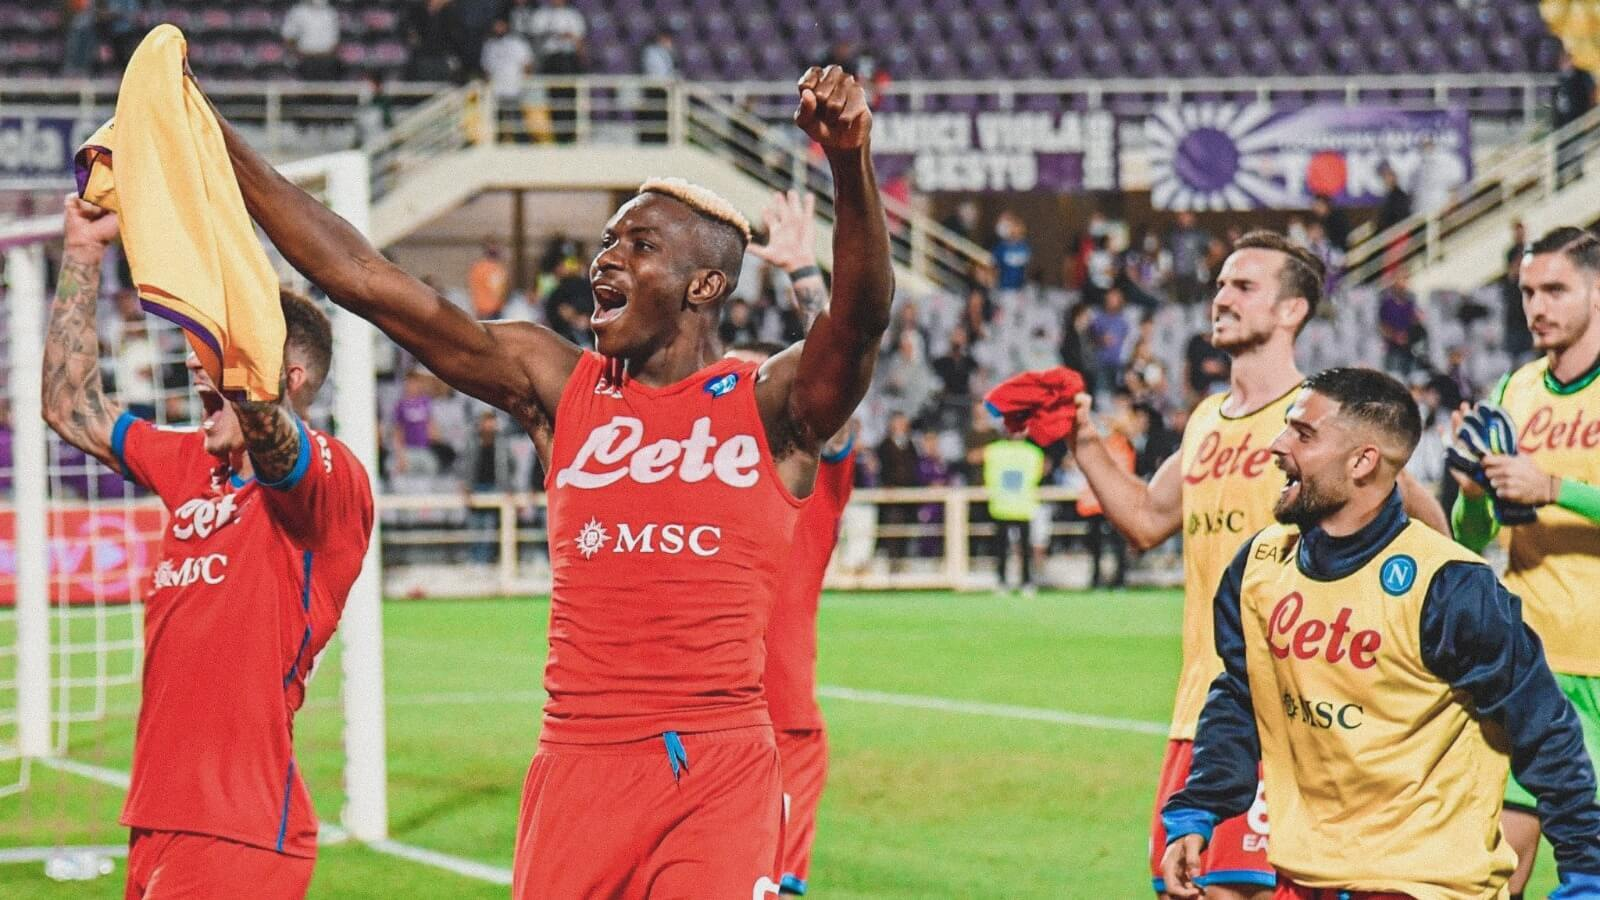 Chiellini ashamed by Fiorentina fans' racist abuse on Napoli players